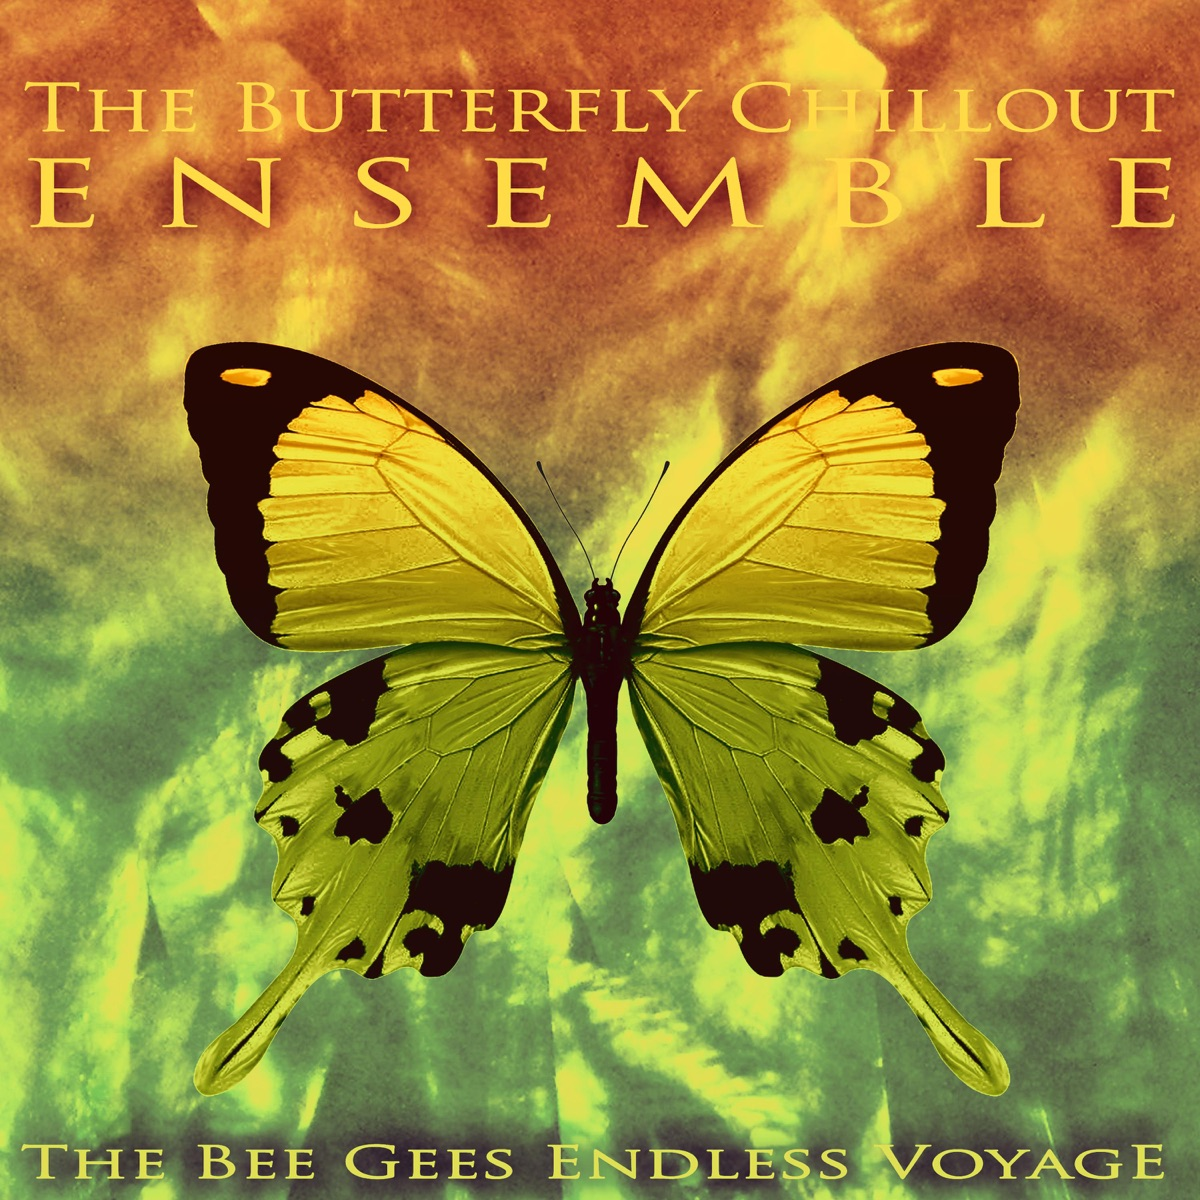 The Bee Gees Endless Voyage Album Cover by The Butterfly